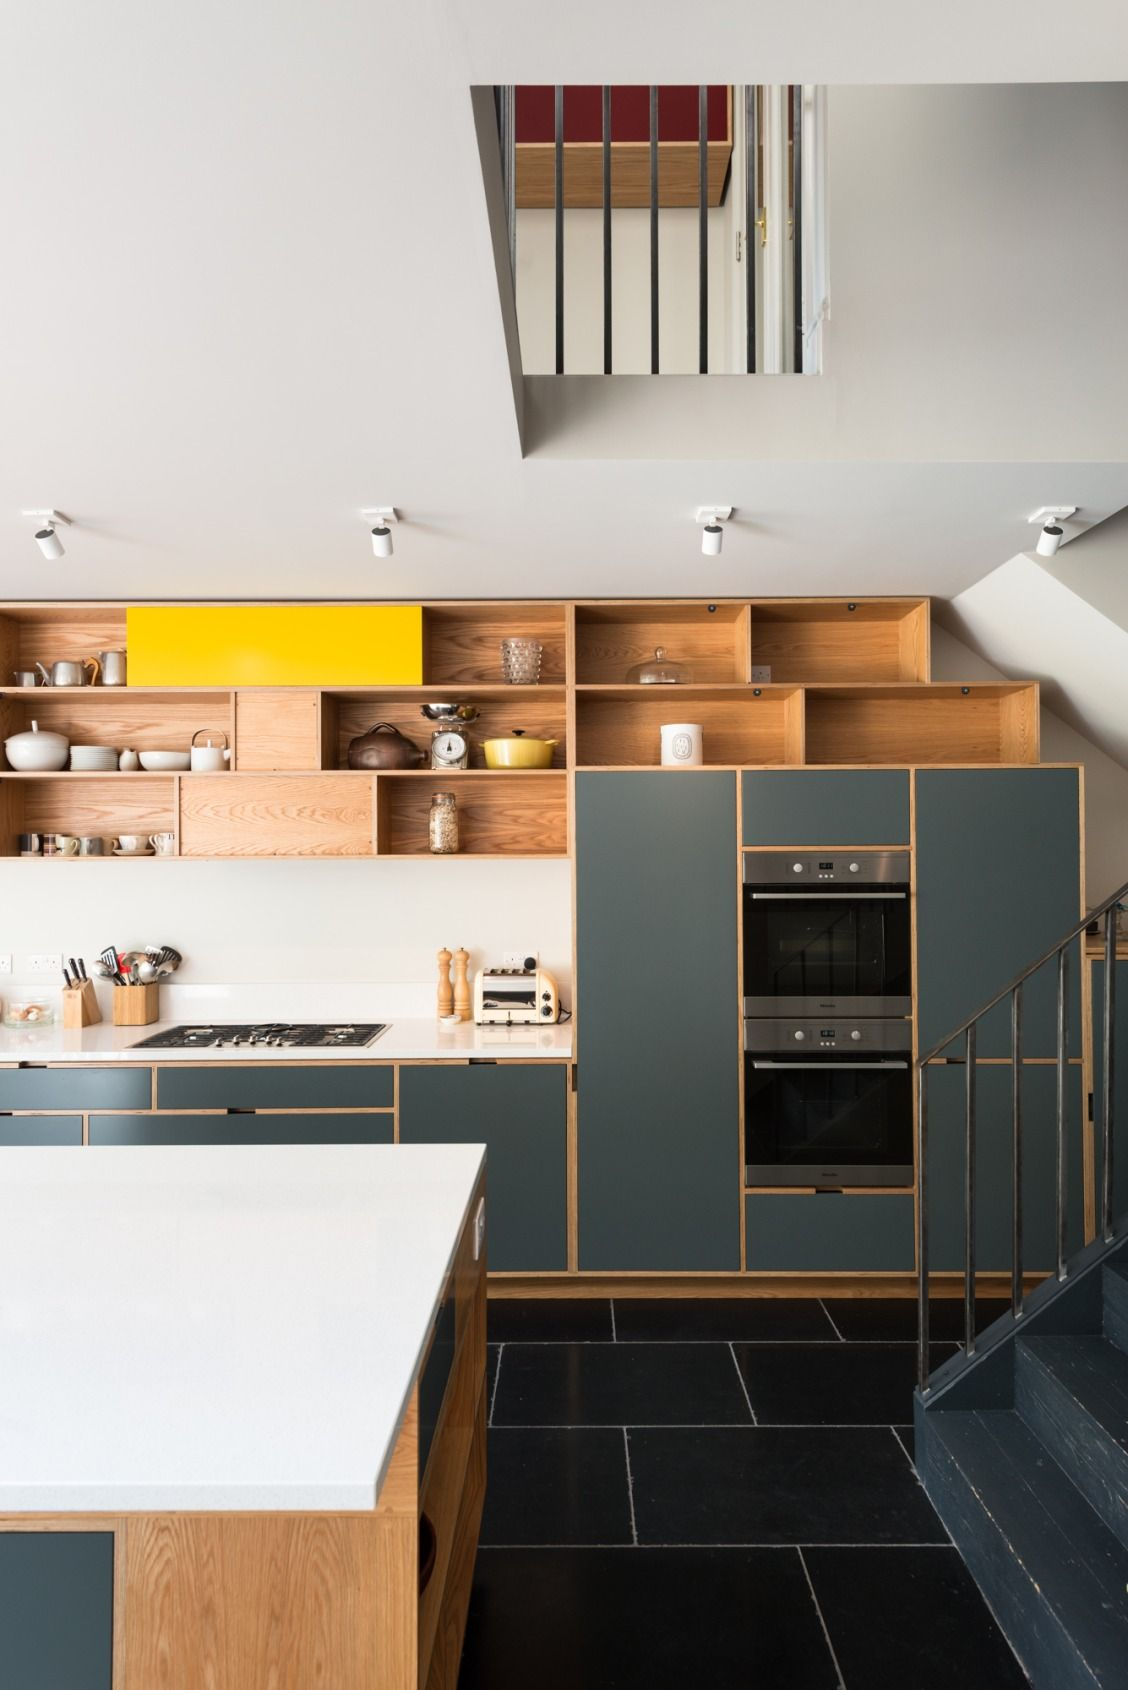 Stunning Modern Formica Laminate Kitchen With A White Backsplash Wood And Tile